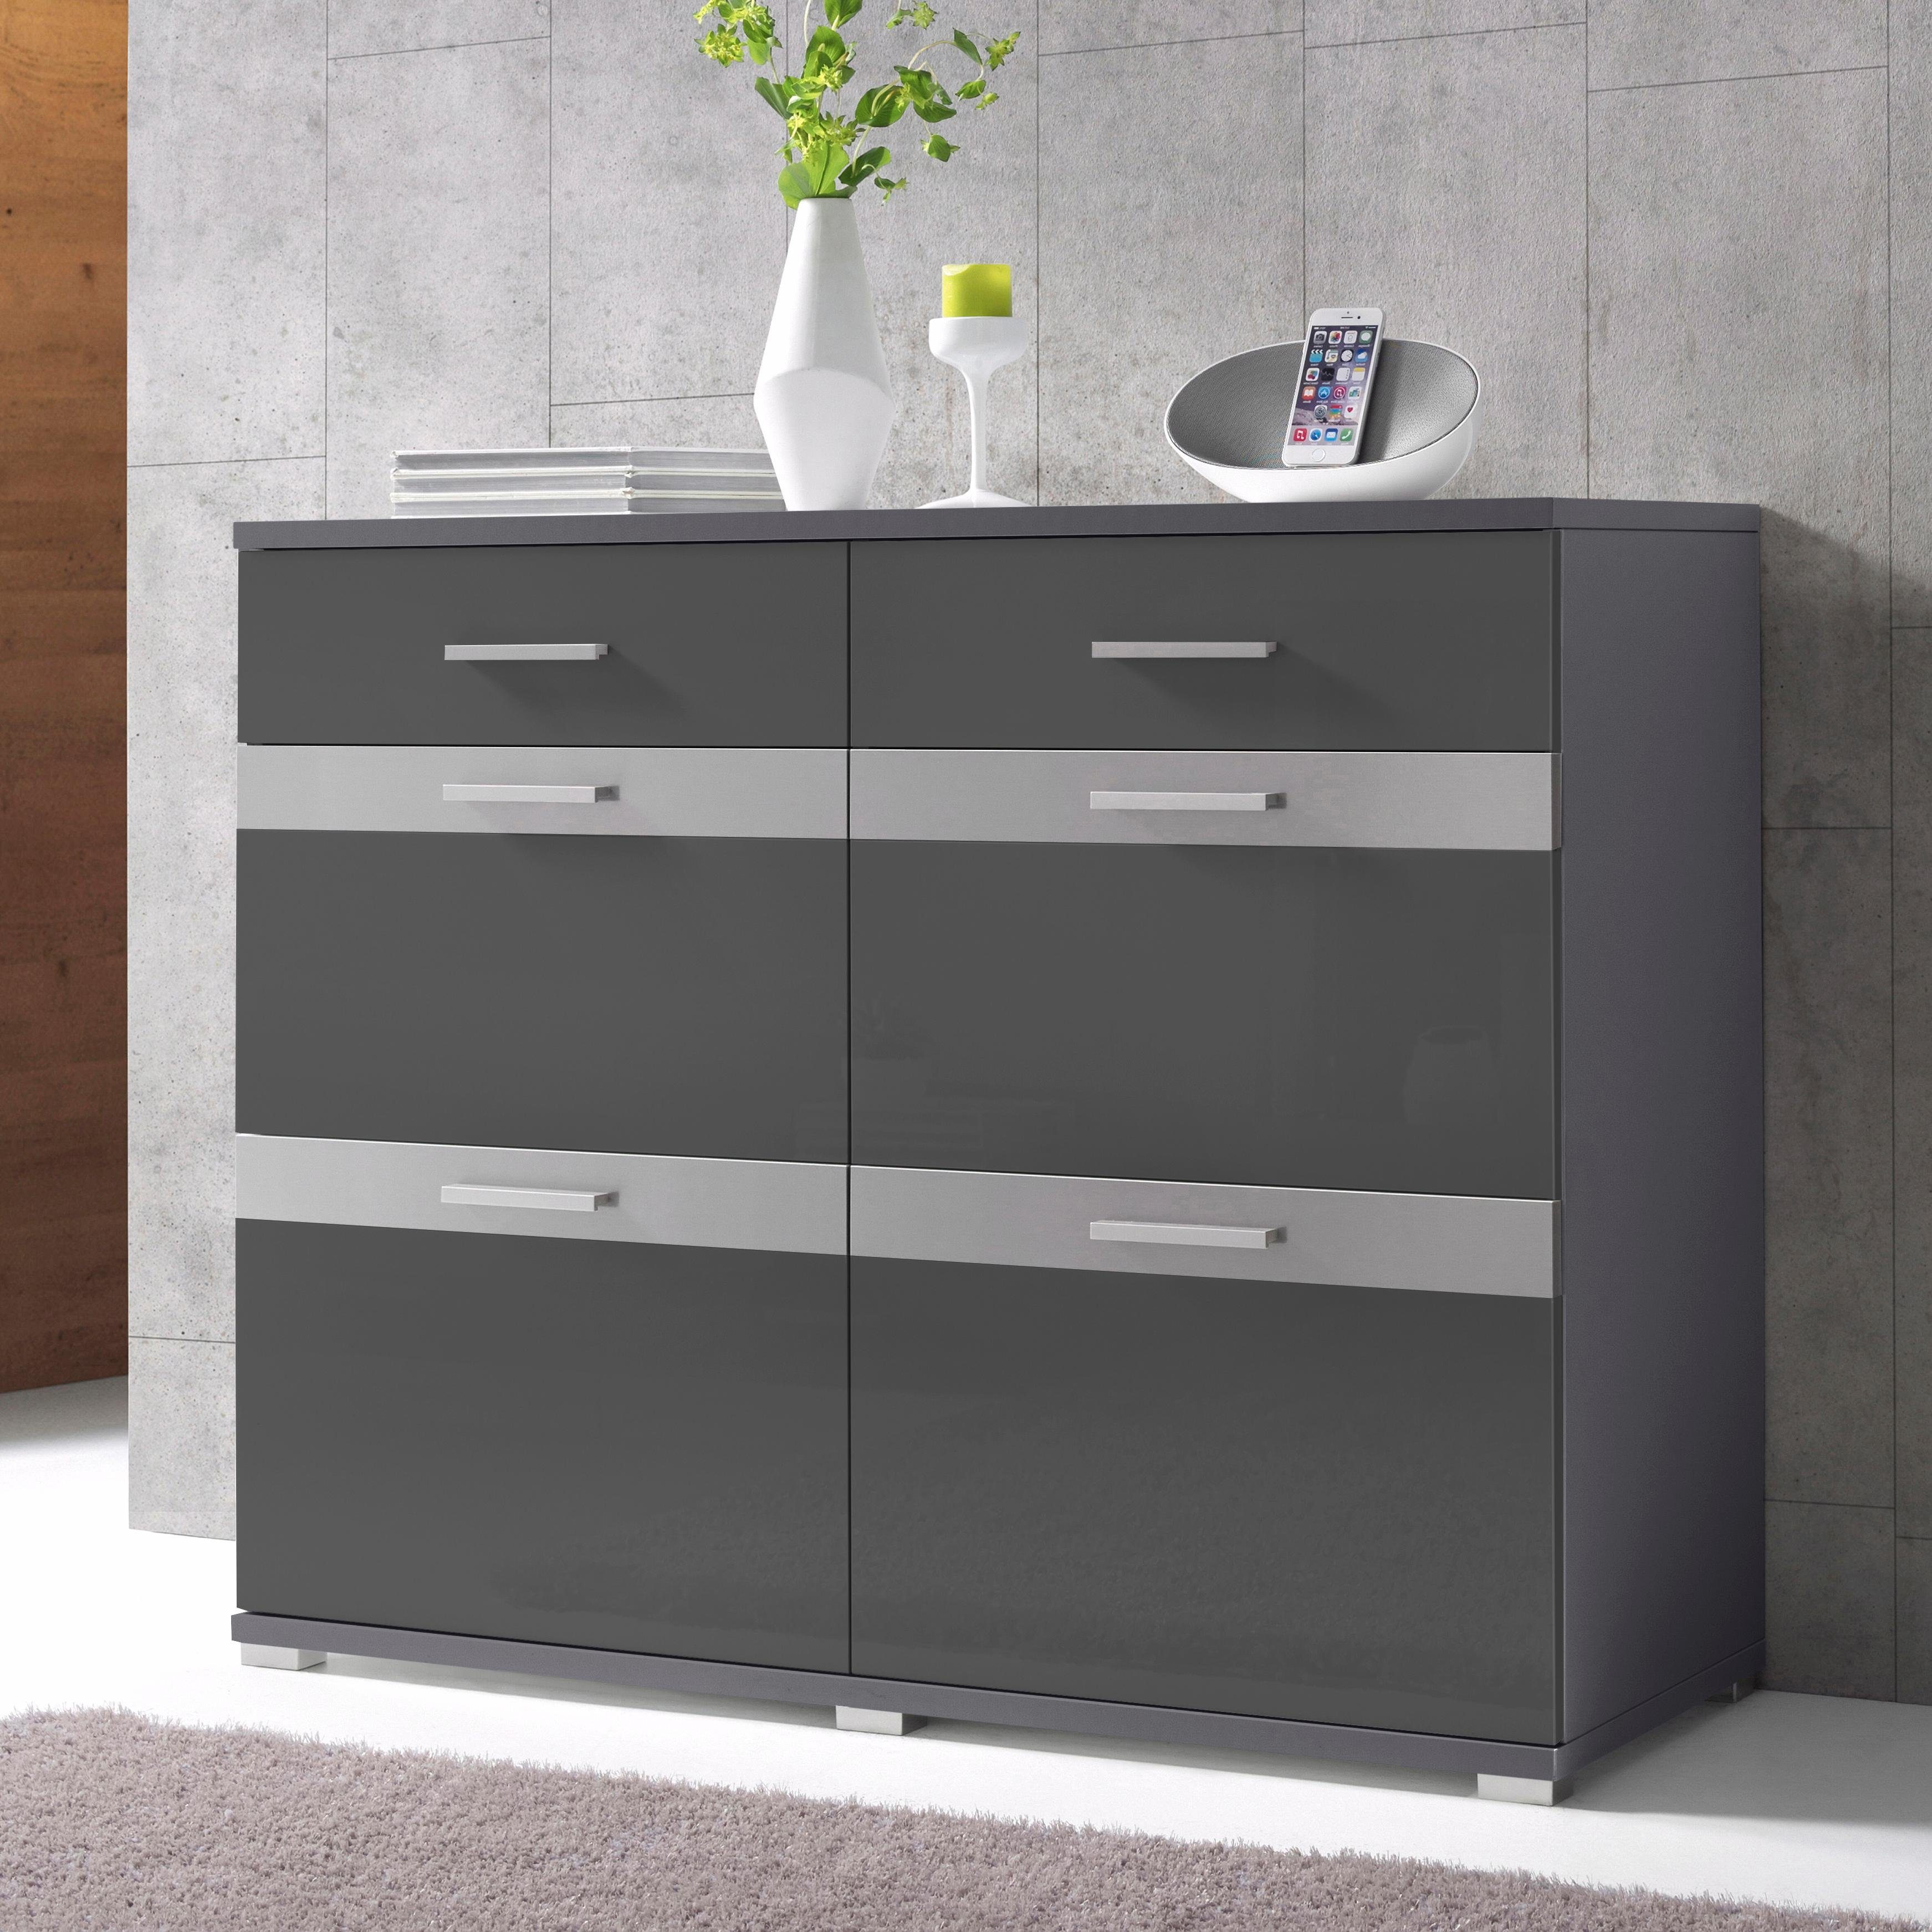 kommode anthrazit hochglanz wohndesign und einrichtungs ideen. Black Bedroom Furniture Sets. Home Design Ideas